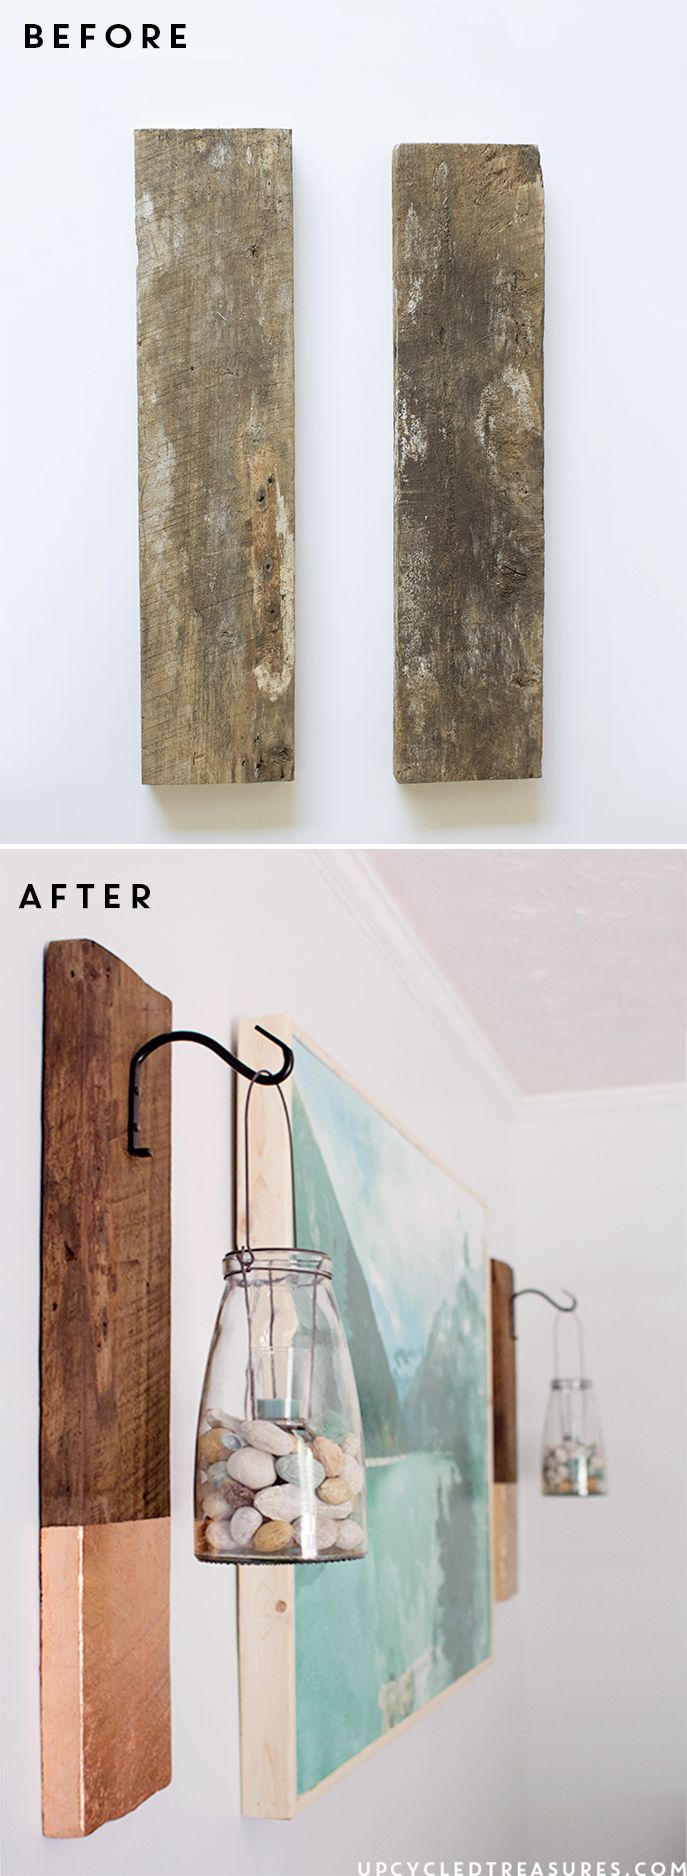 Bedroom wall decoration diy - How To Create A Modern Rustic Wall Hanging Rustic Modern Decor Diymodern